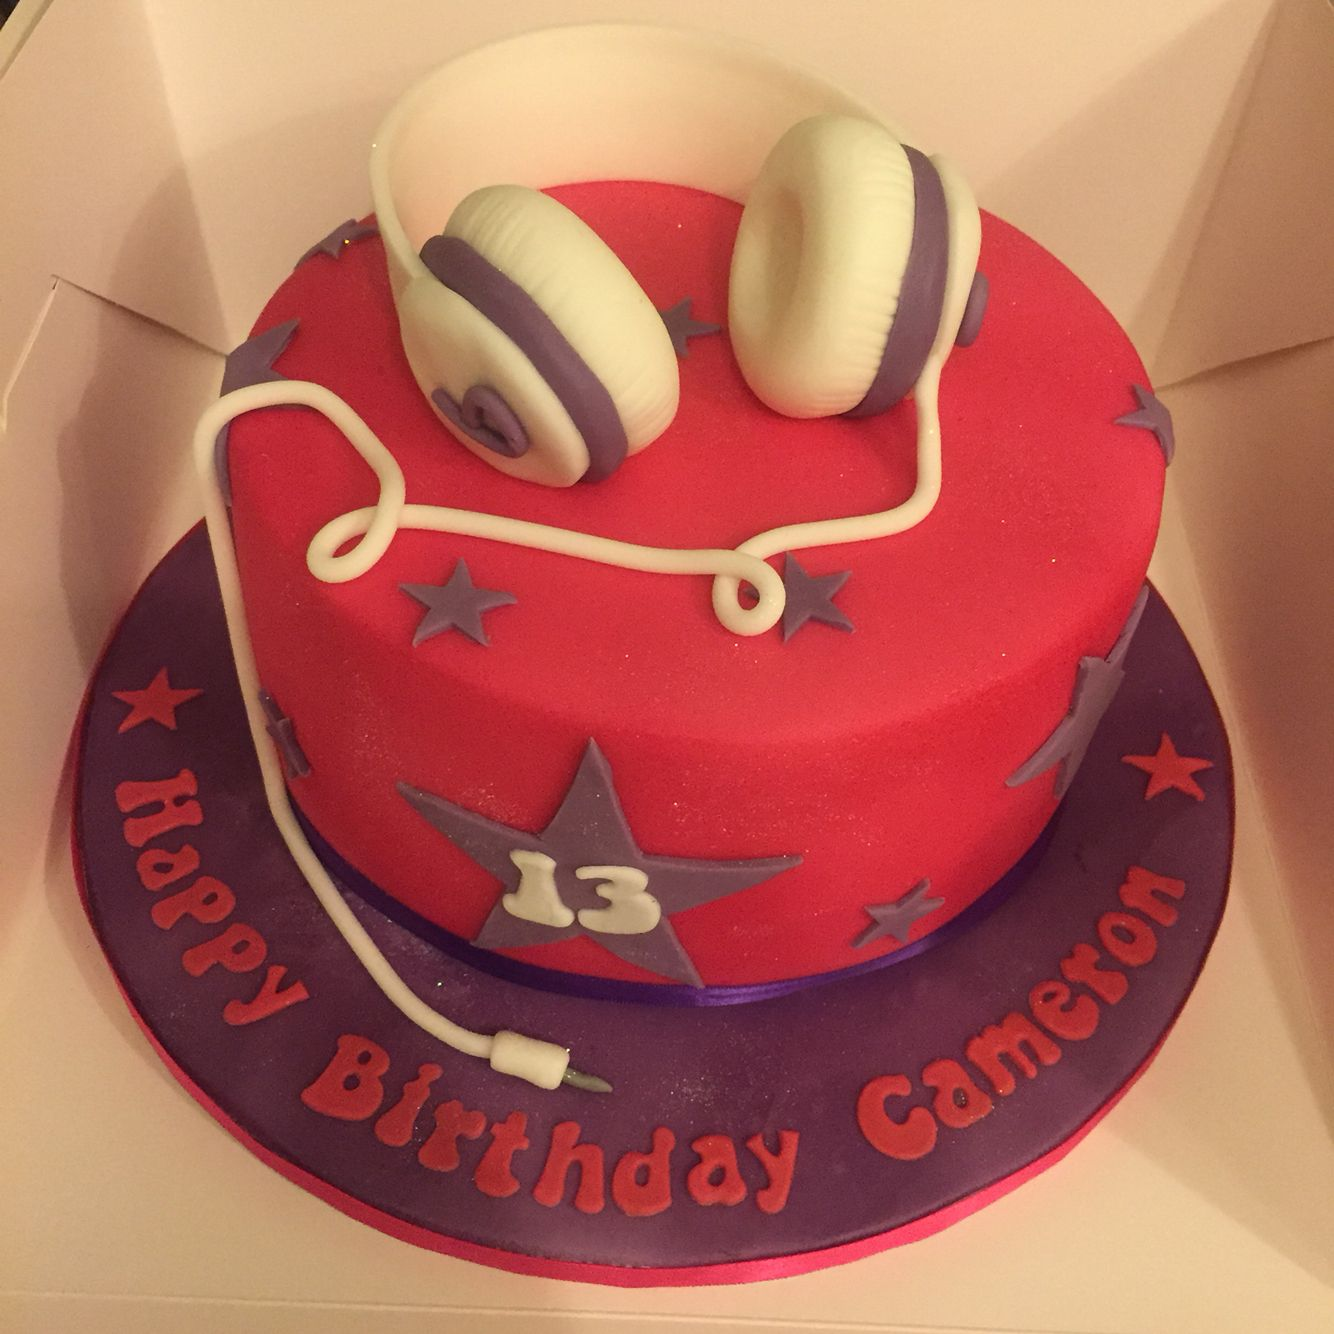 Girly beats birthday cake